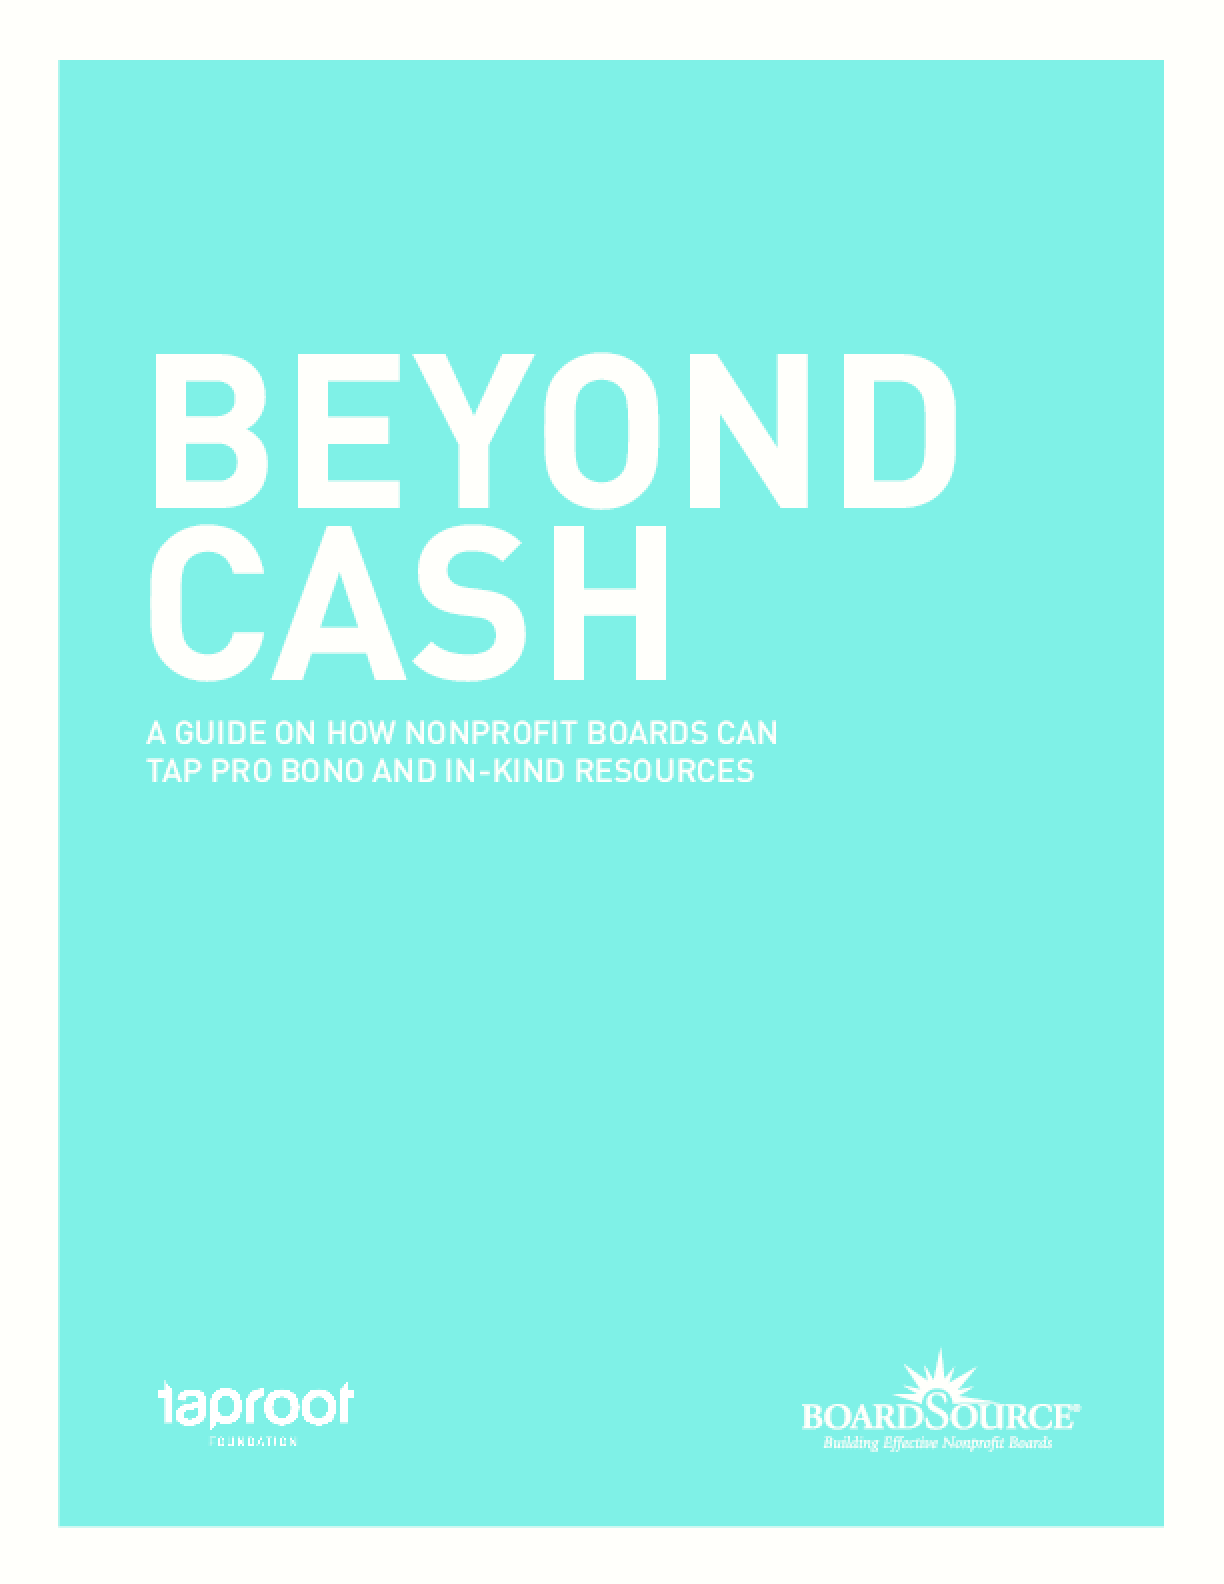 Beyond Cash: A Guide on How Nonprofit Boards Can Tap Pro Bono and In Kind Resources